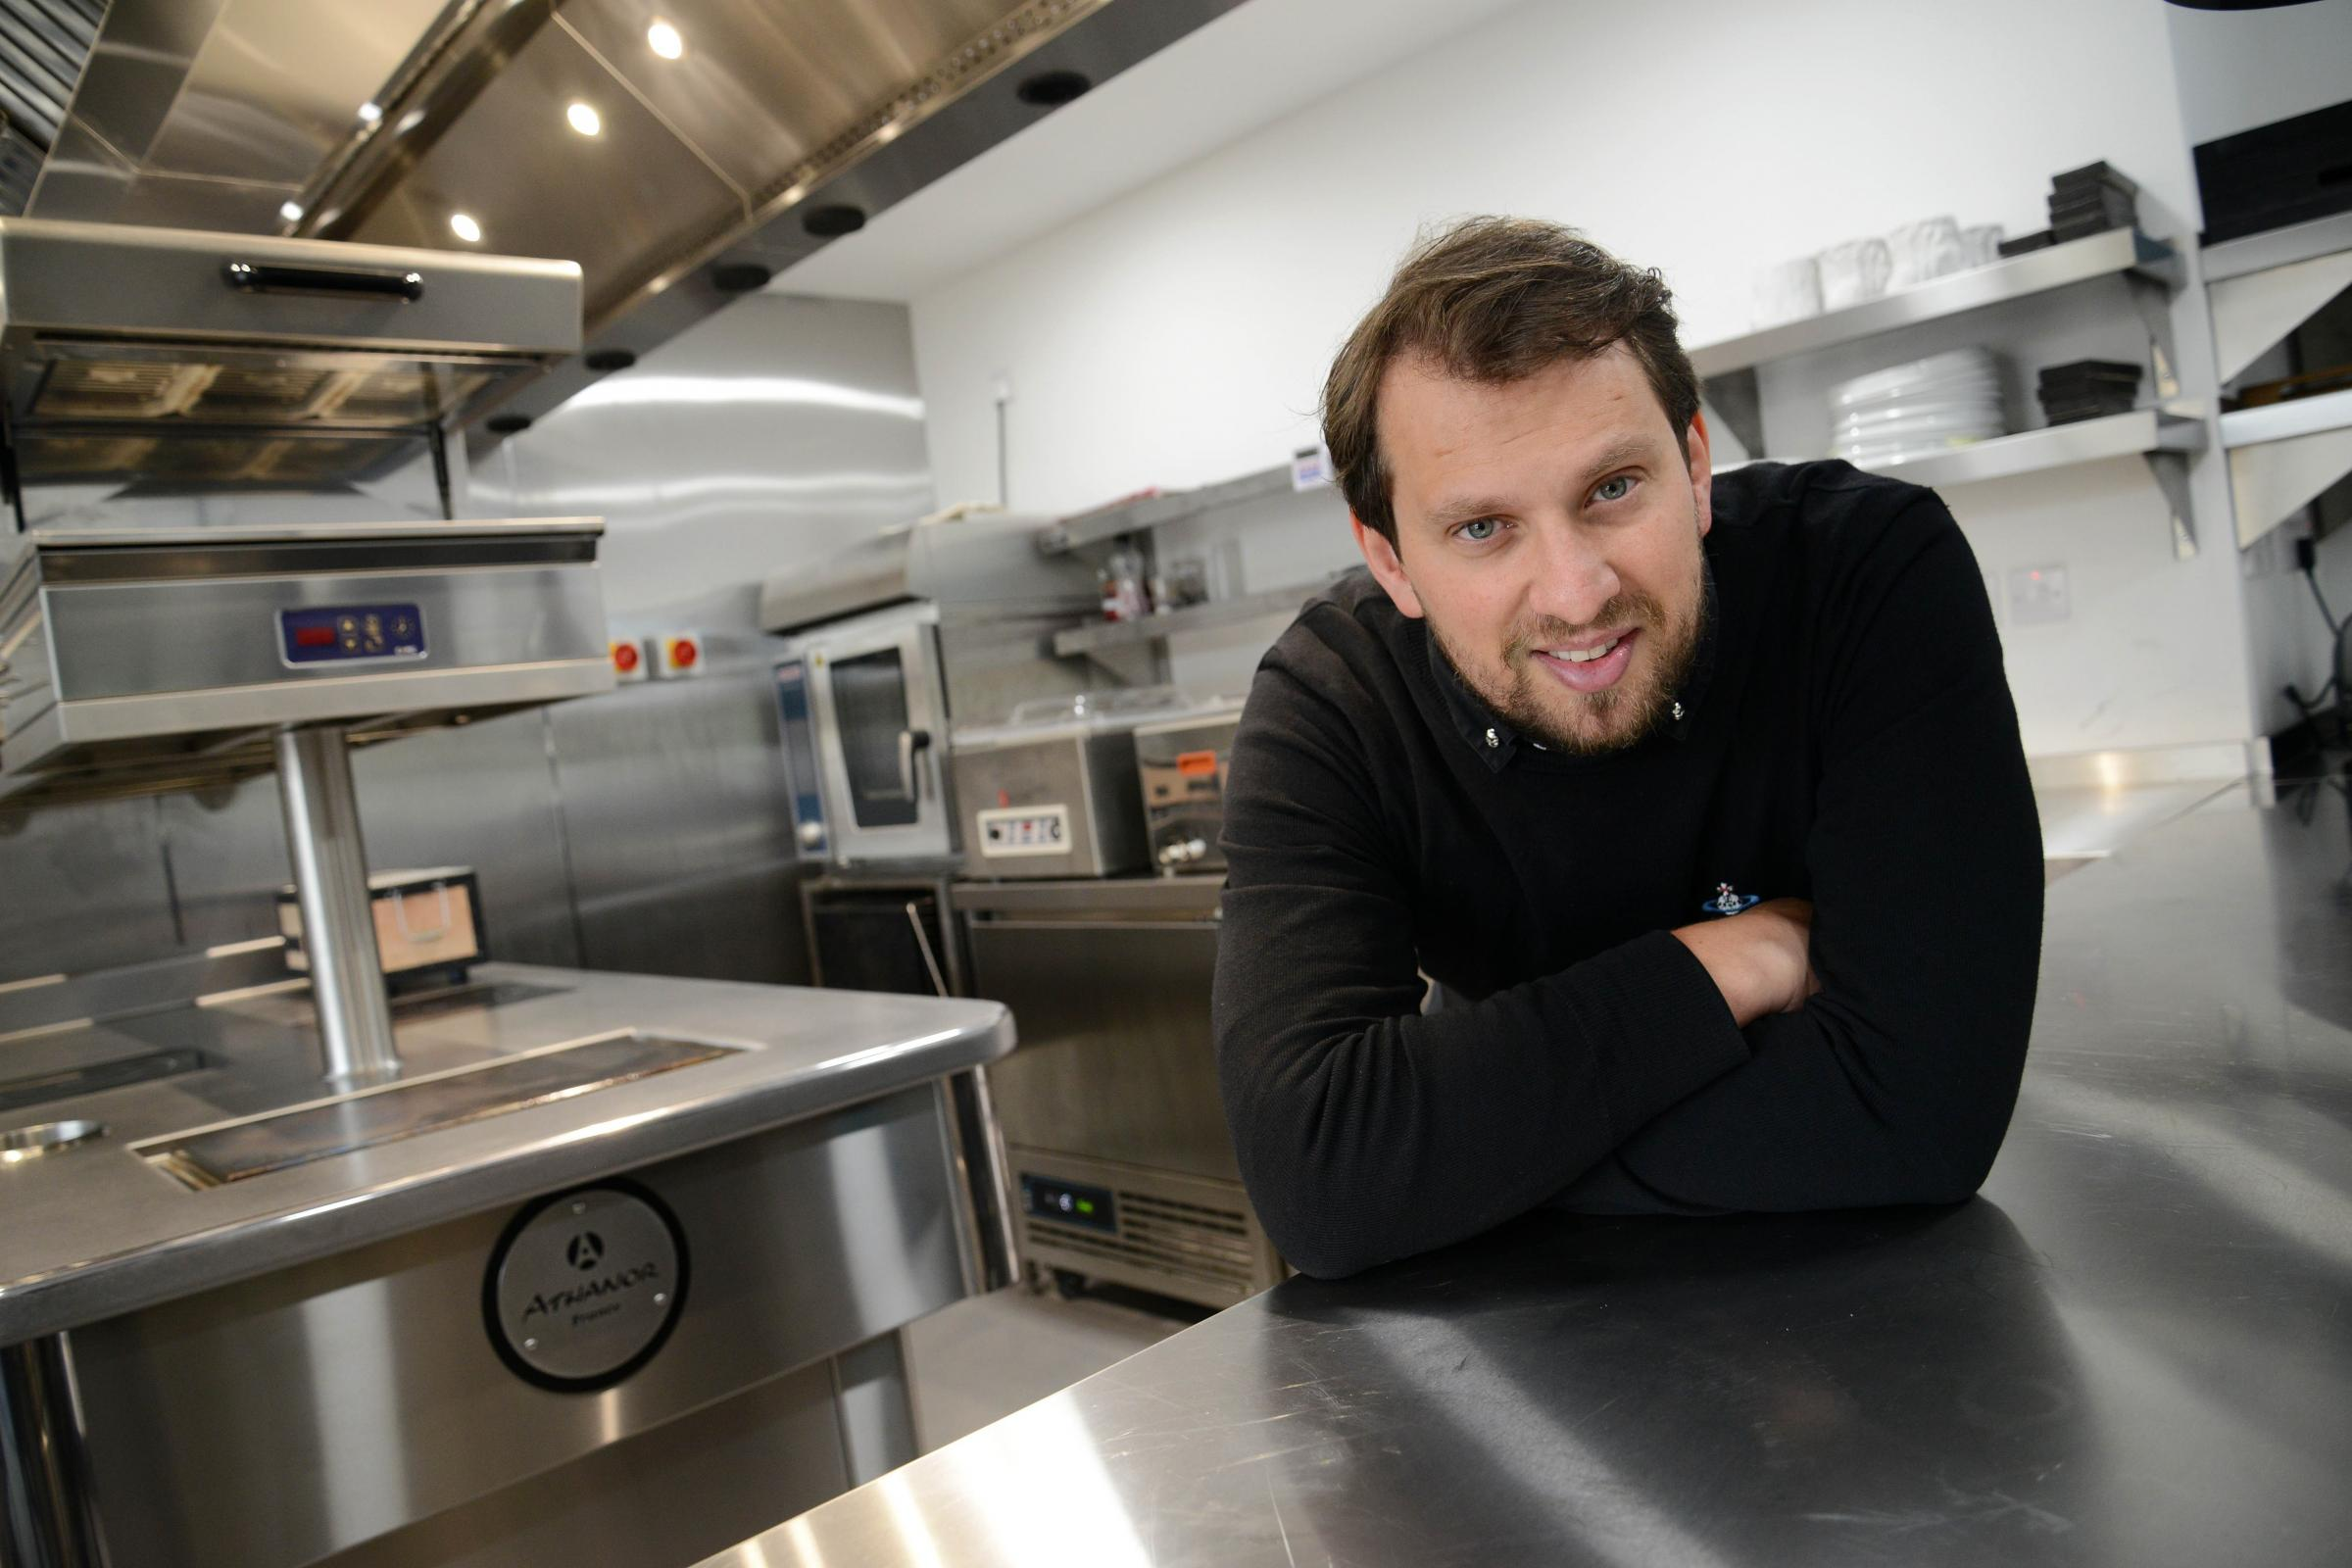 TV: James Close of the Raby Hunt will put Masterchef contestants through their paces on TV